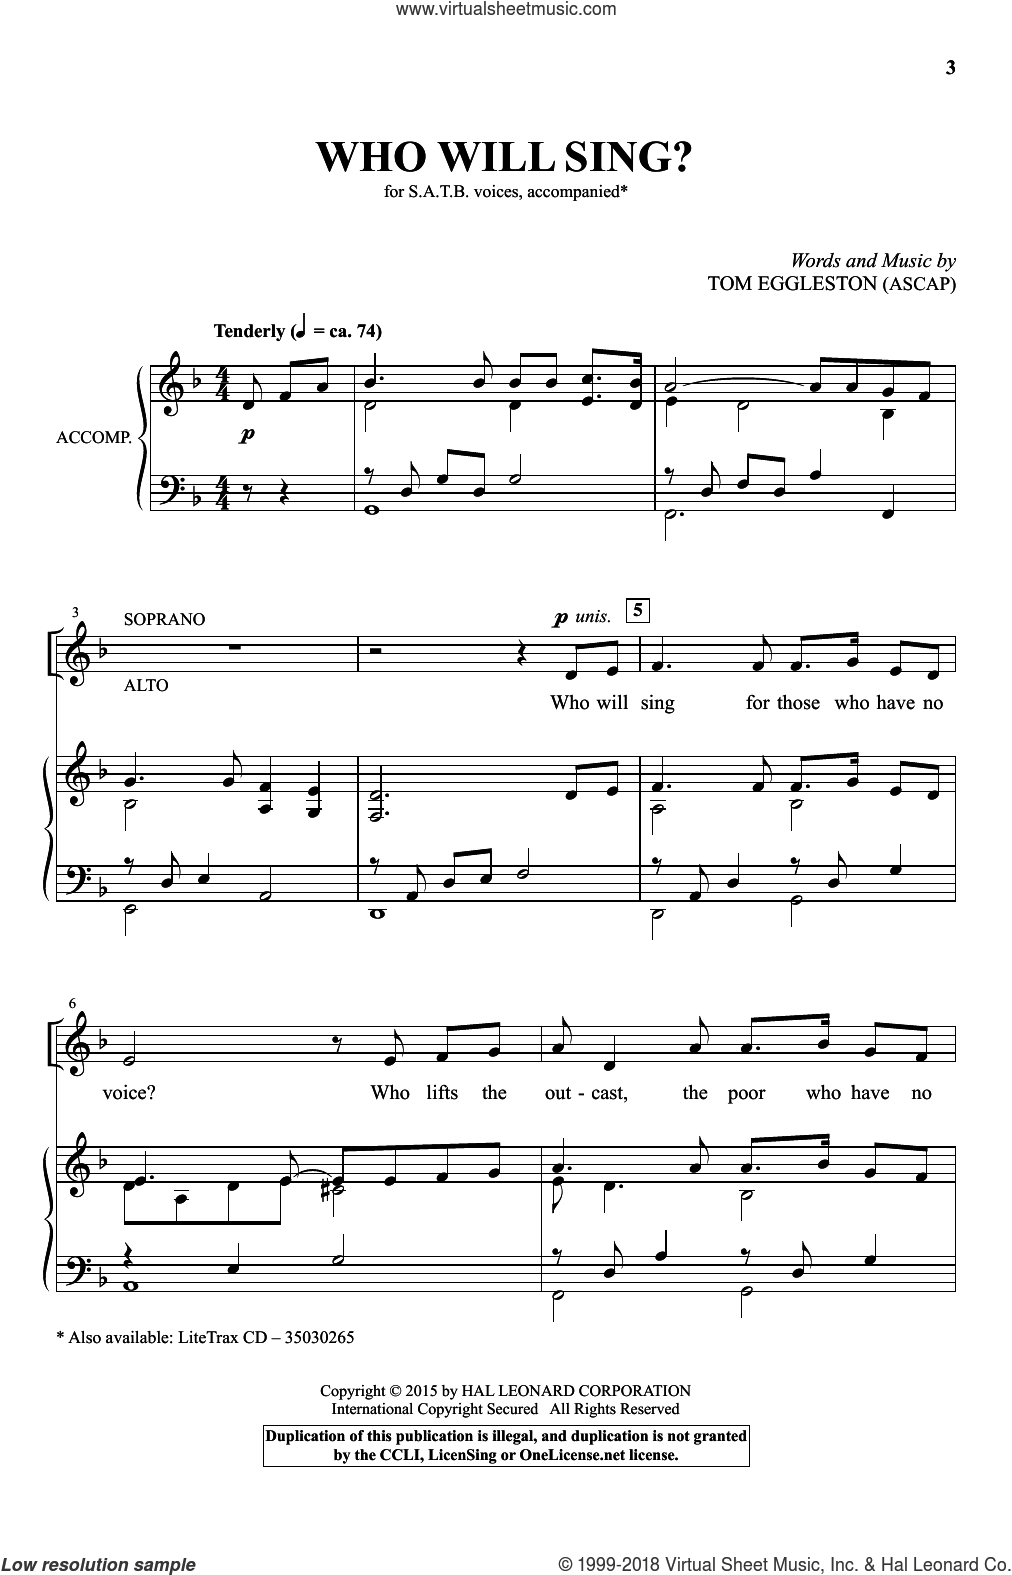 Who Will Sing? sheet music for choir and piano (SATB) by Tom Eggleston